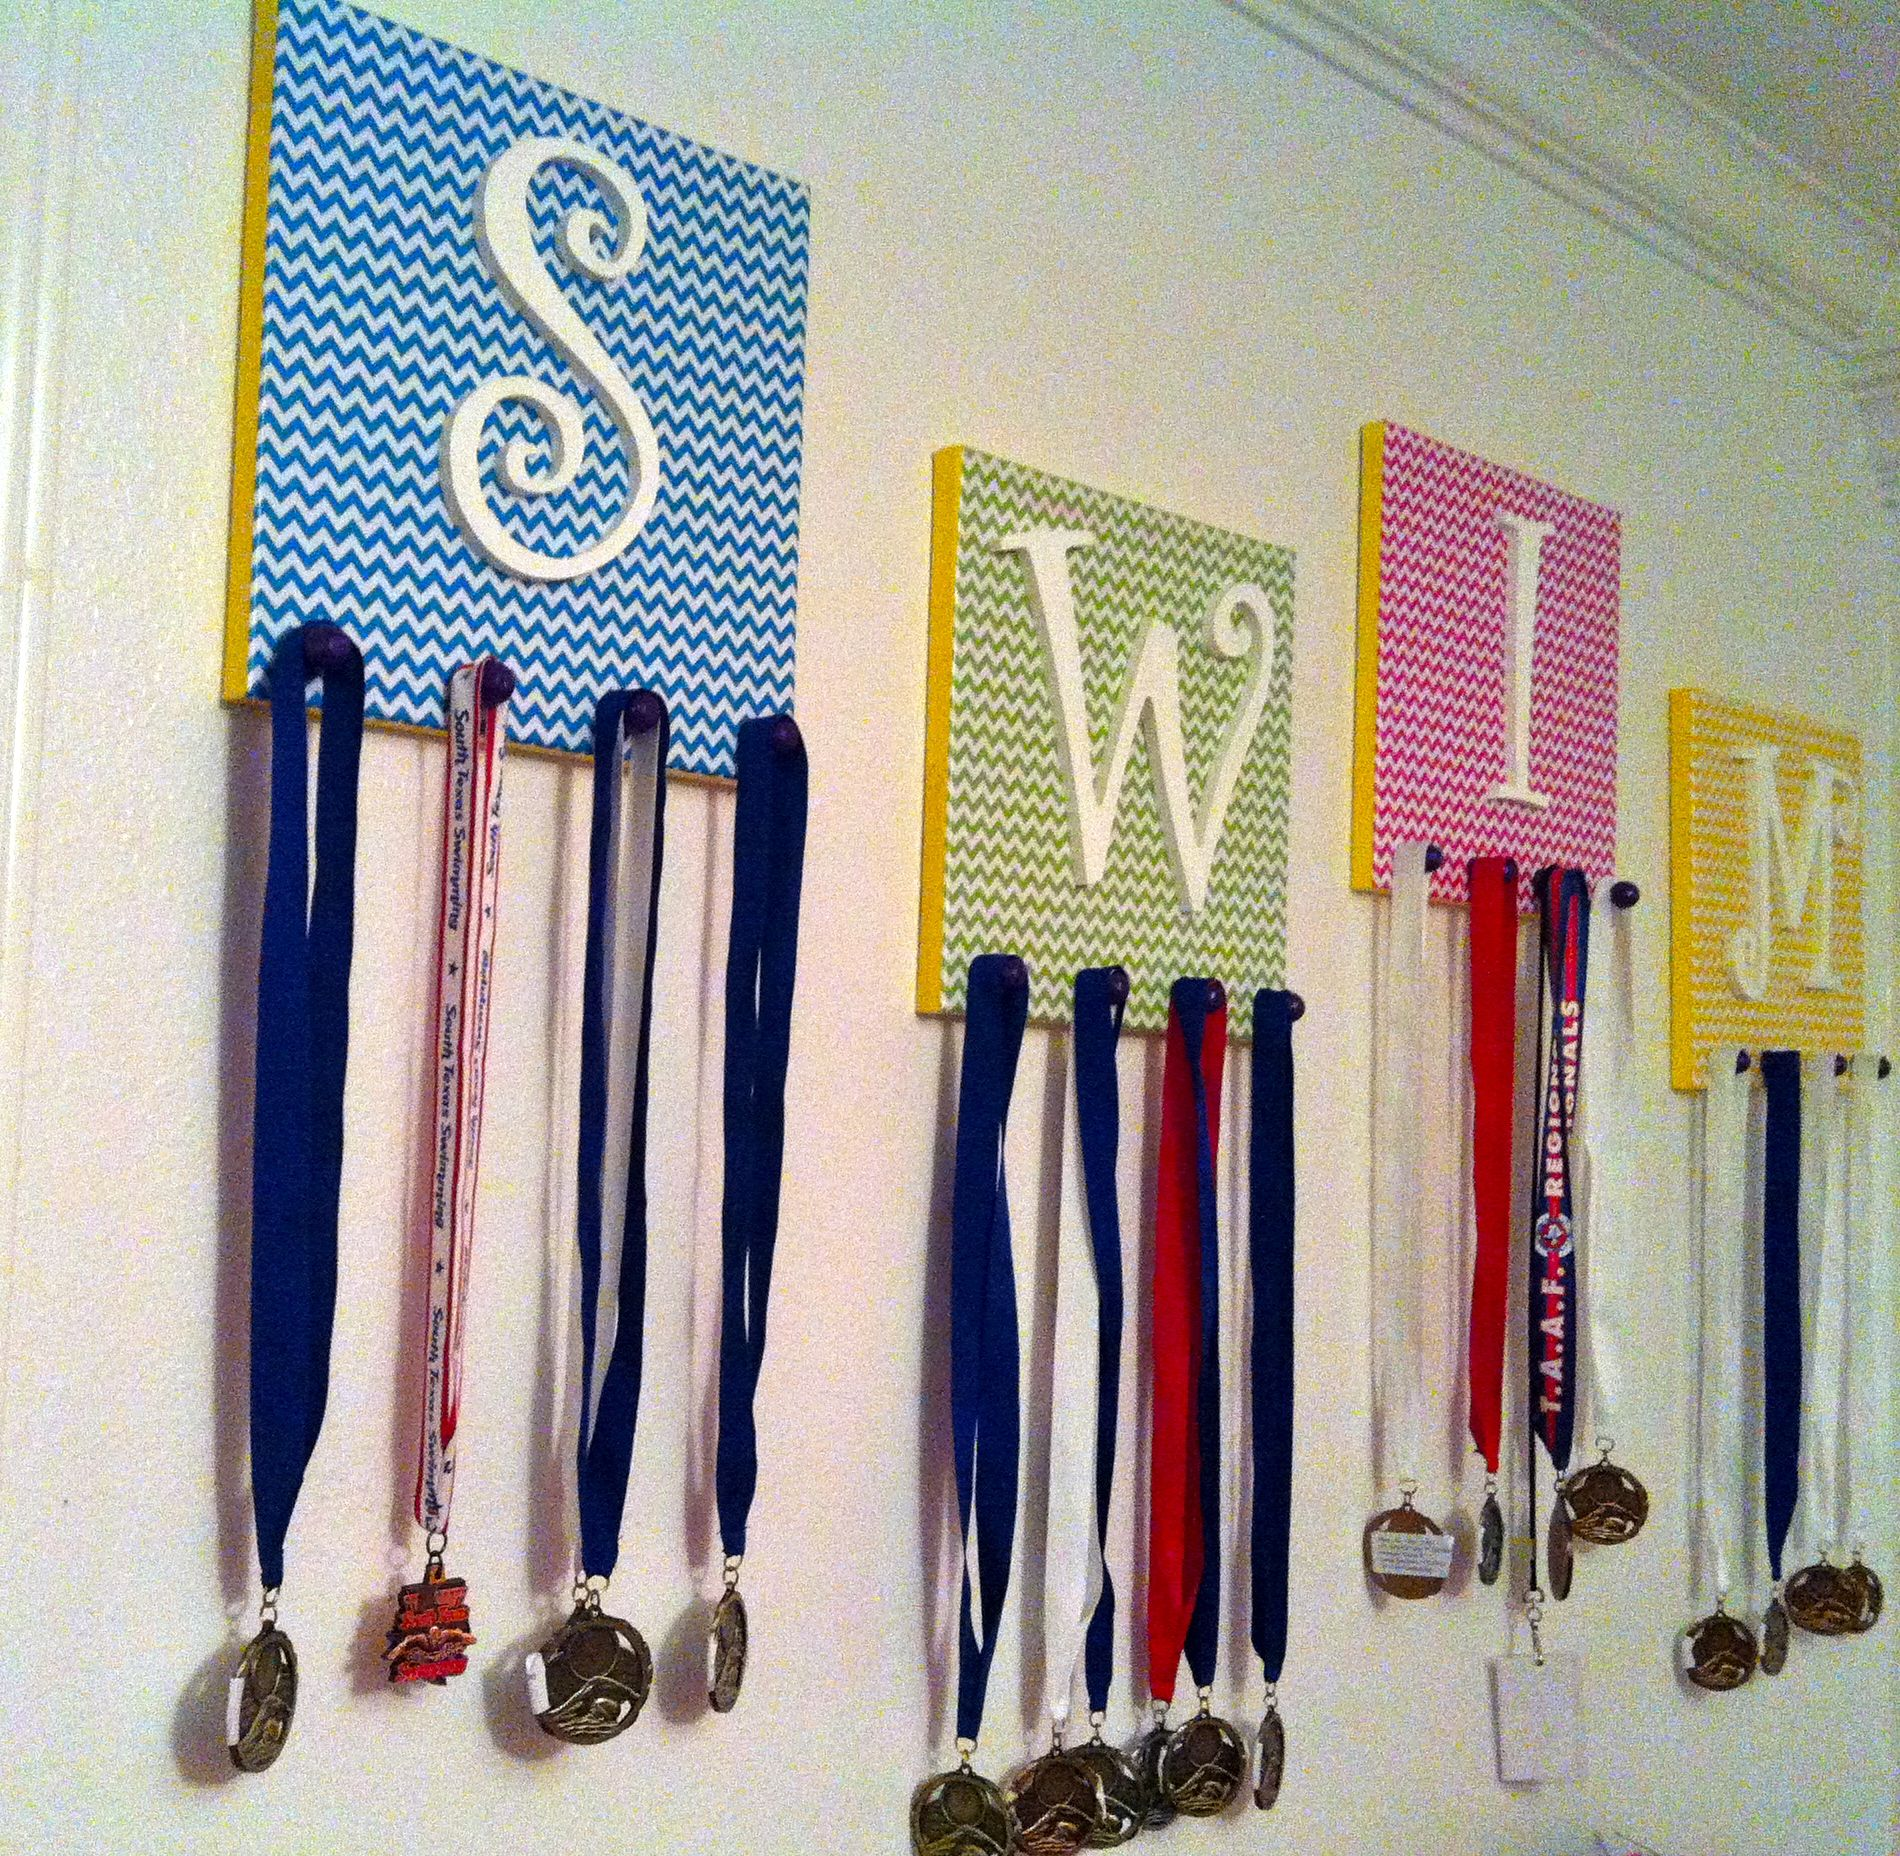 diy swim medal and accessory holder easy and creative way to